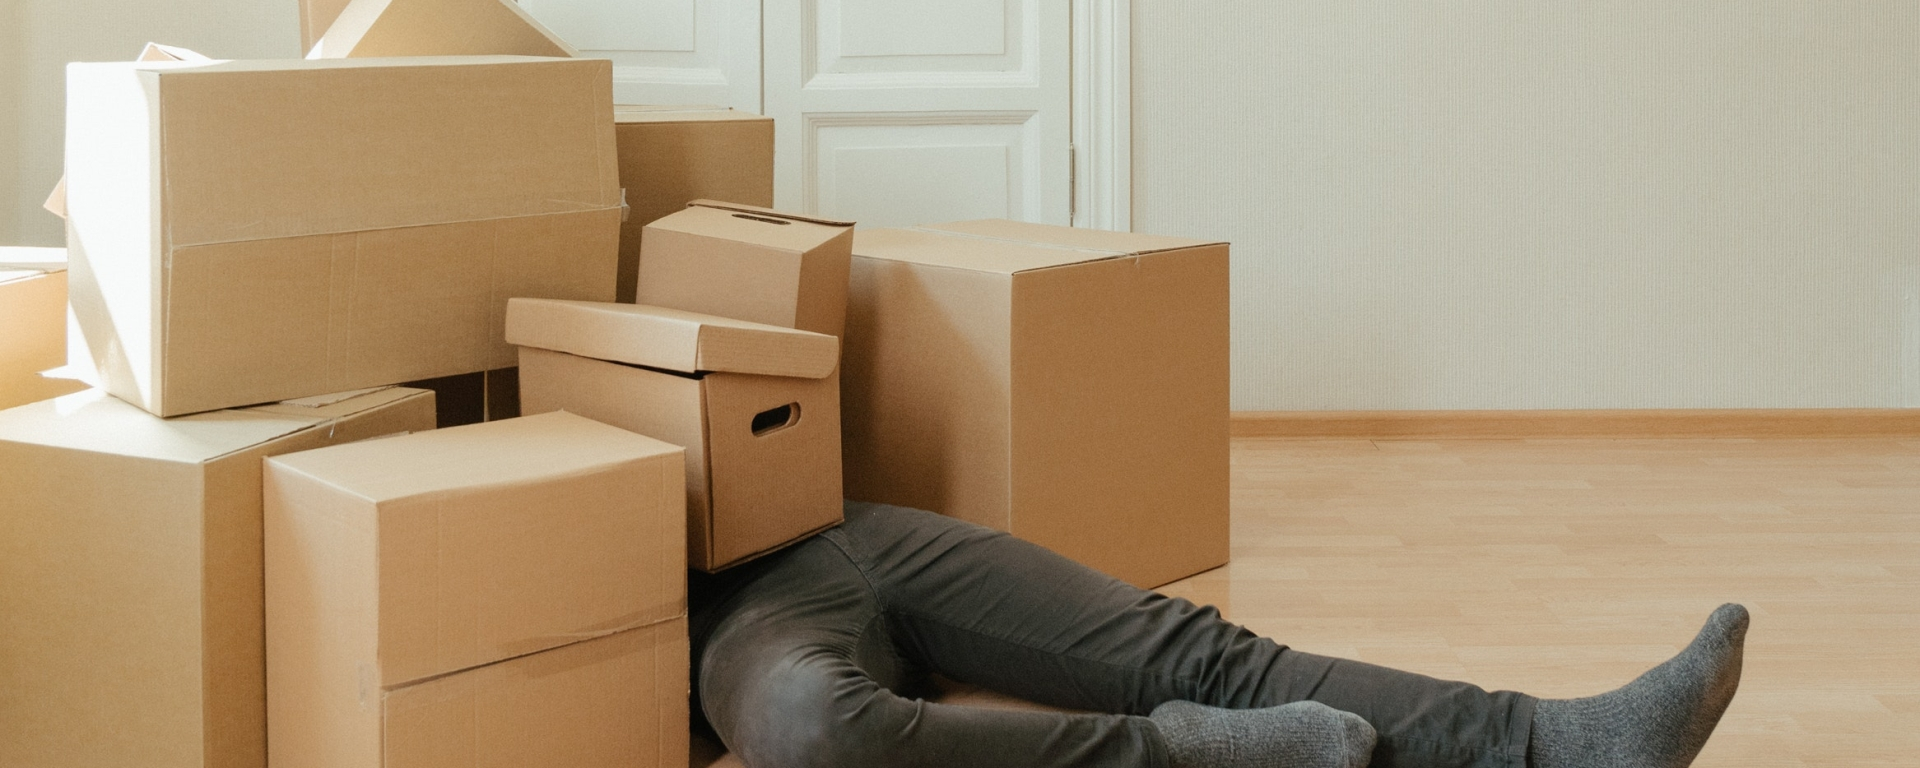 An image of a pile of boxes with a man underneath them.